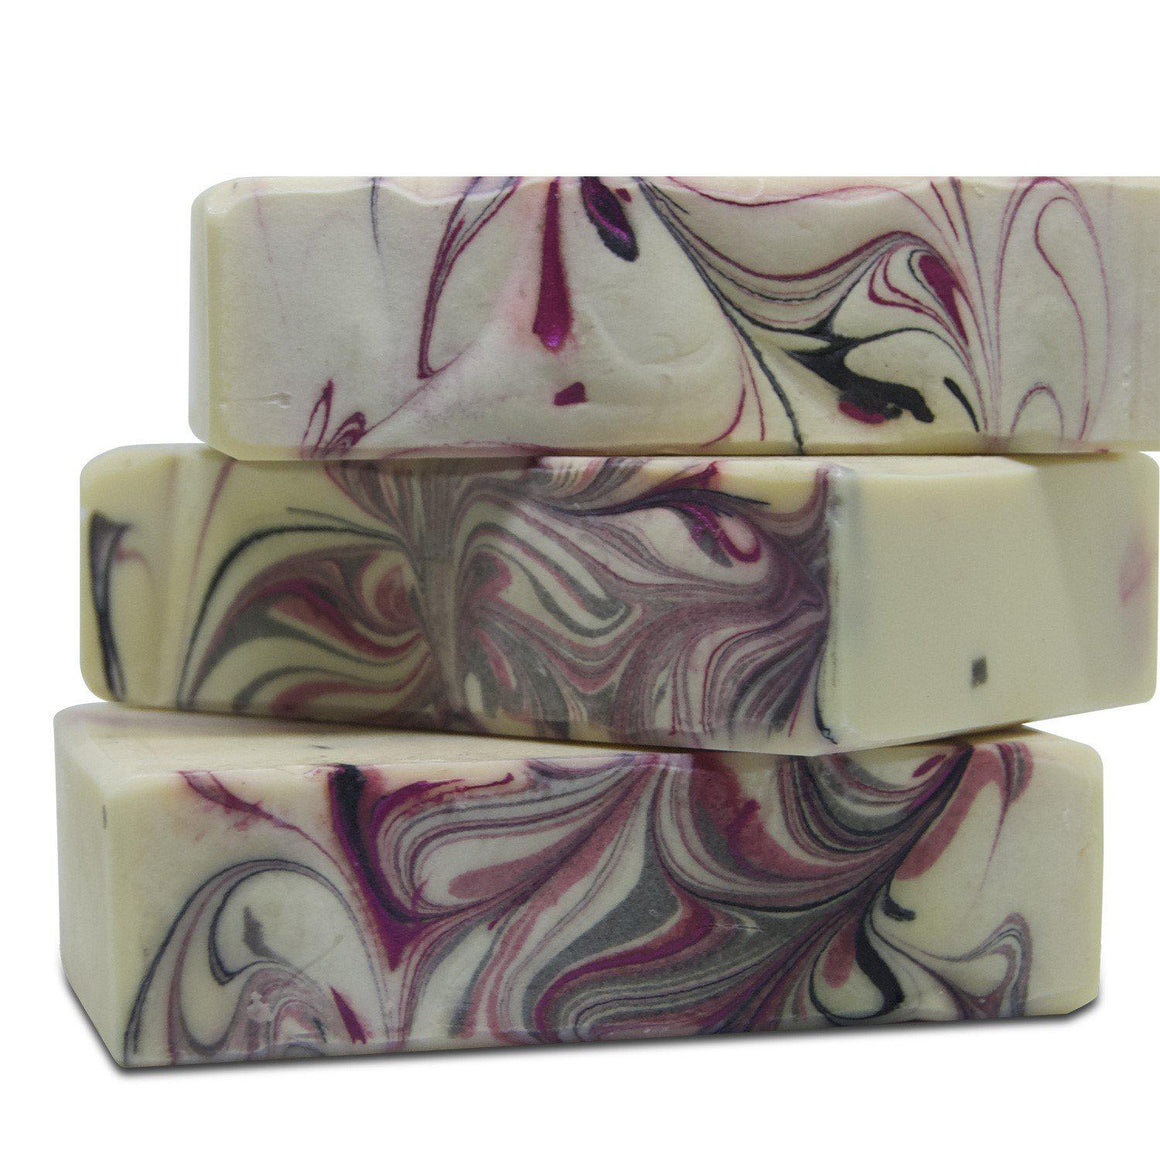 Curvy Camel Milk Soap - Scented Camel Milk Soap | Camel Milk NSW